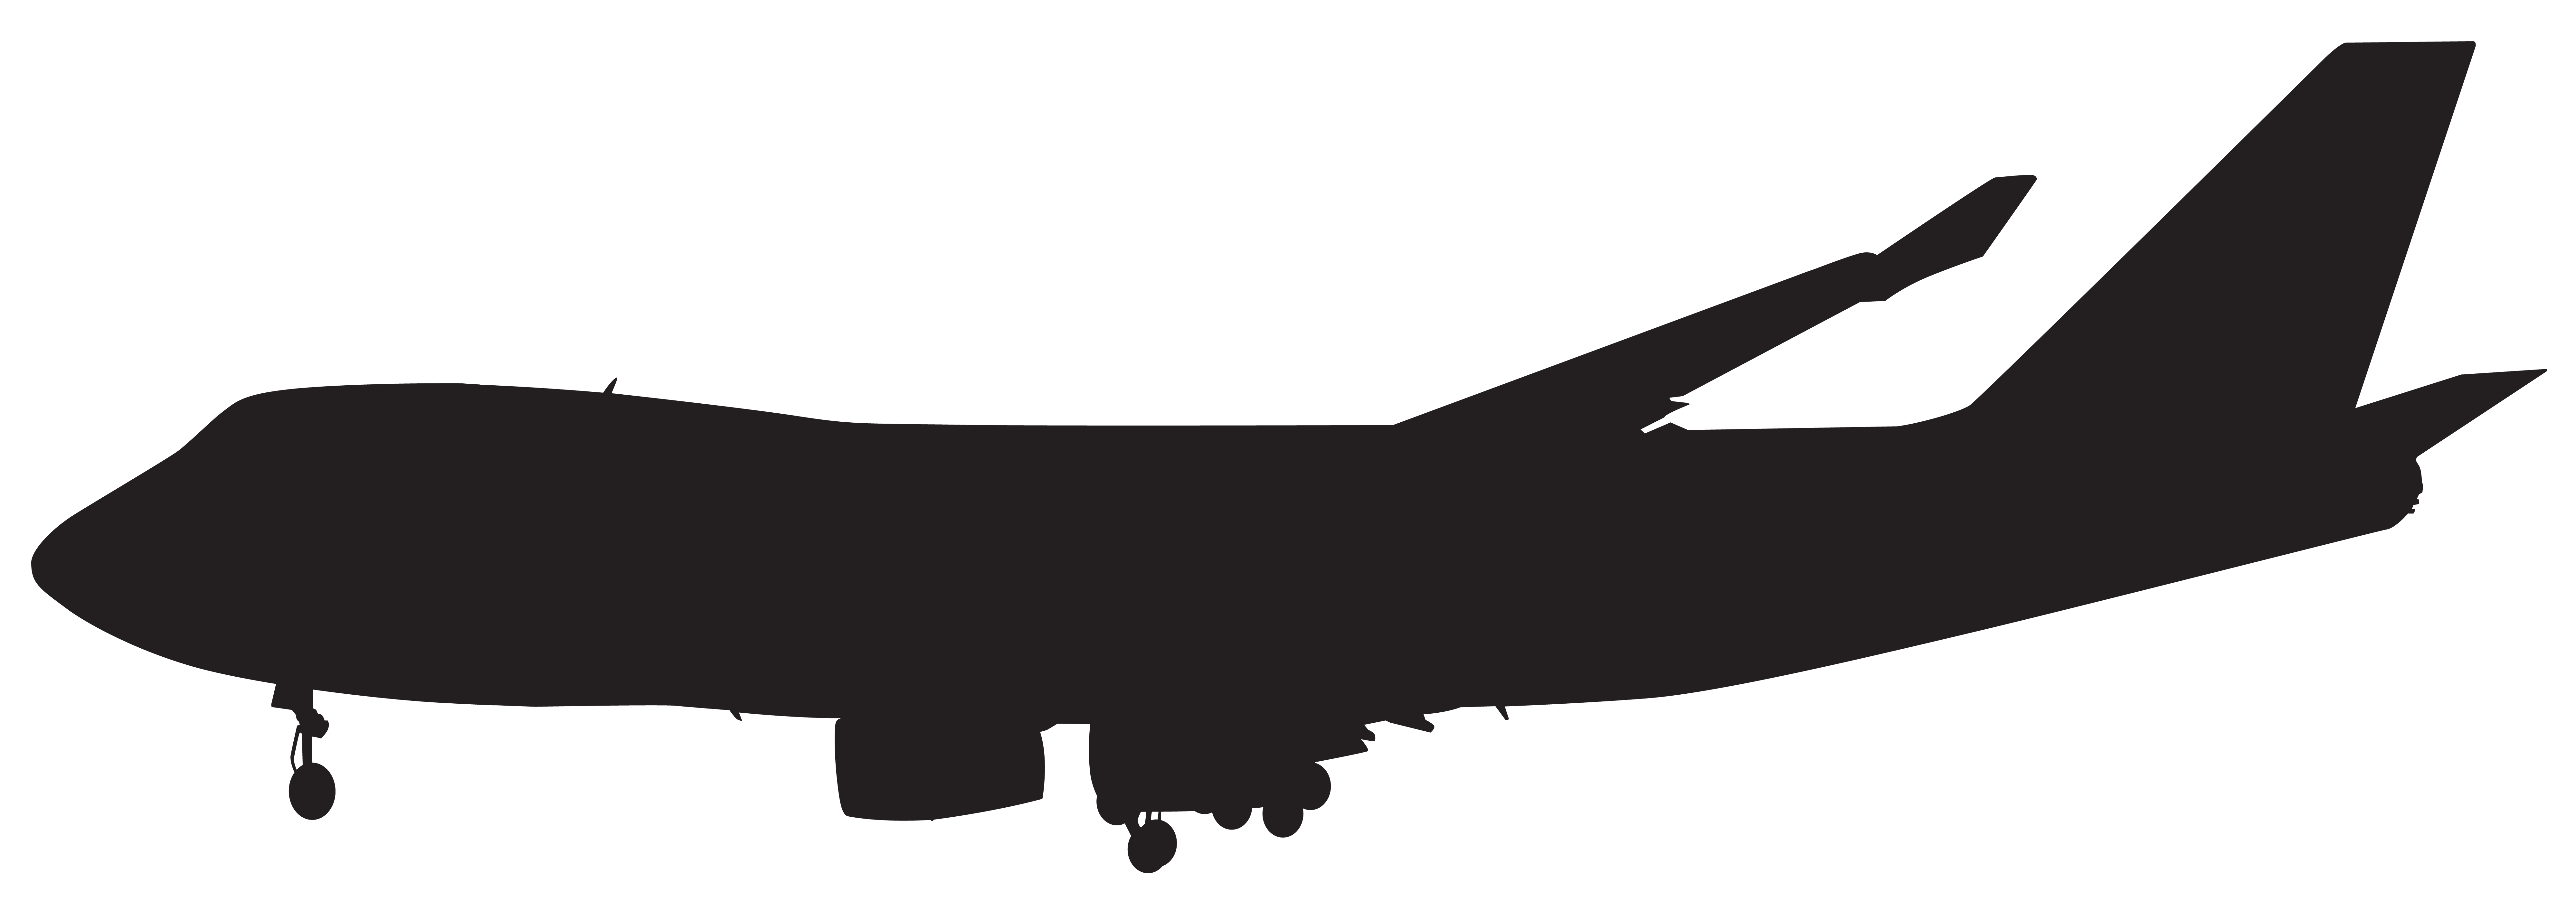 Airplane silhouette png clip. Sunset clipart dawn sunrise